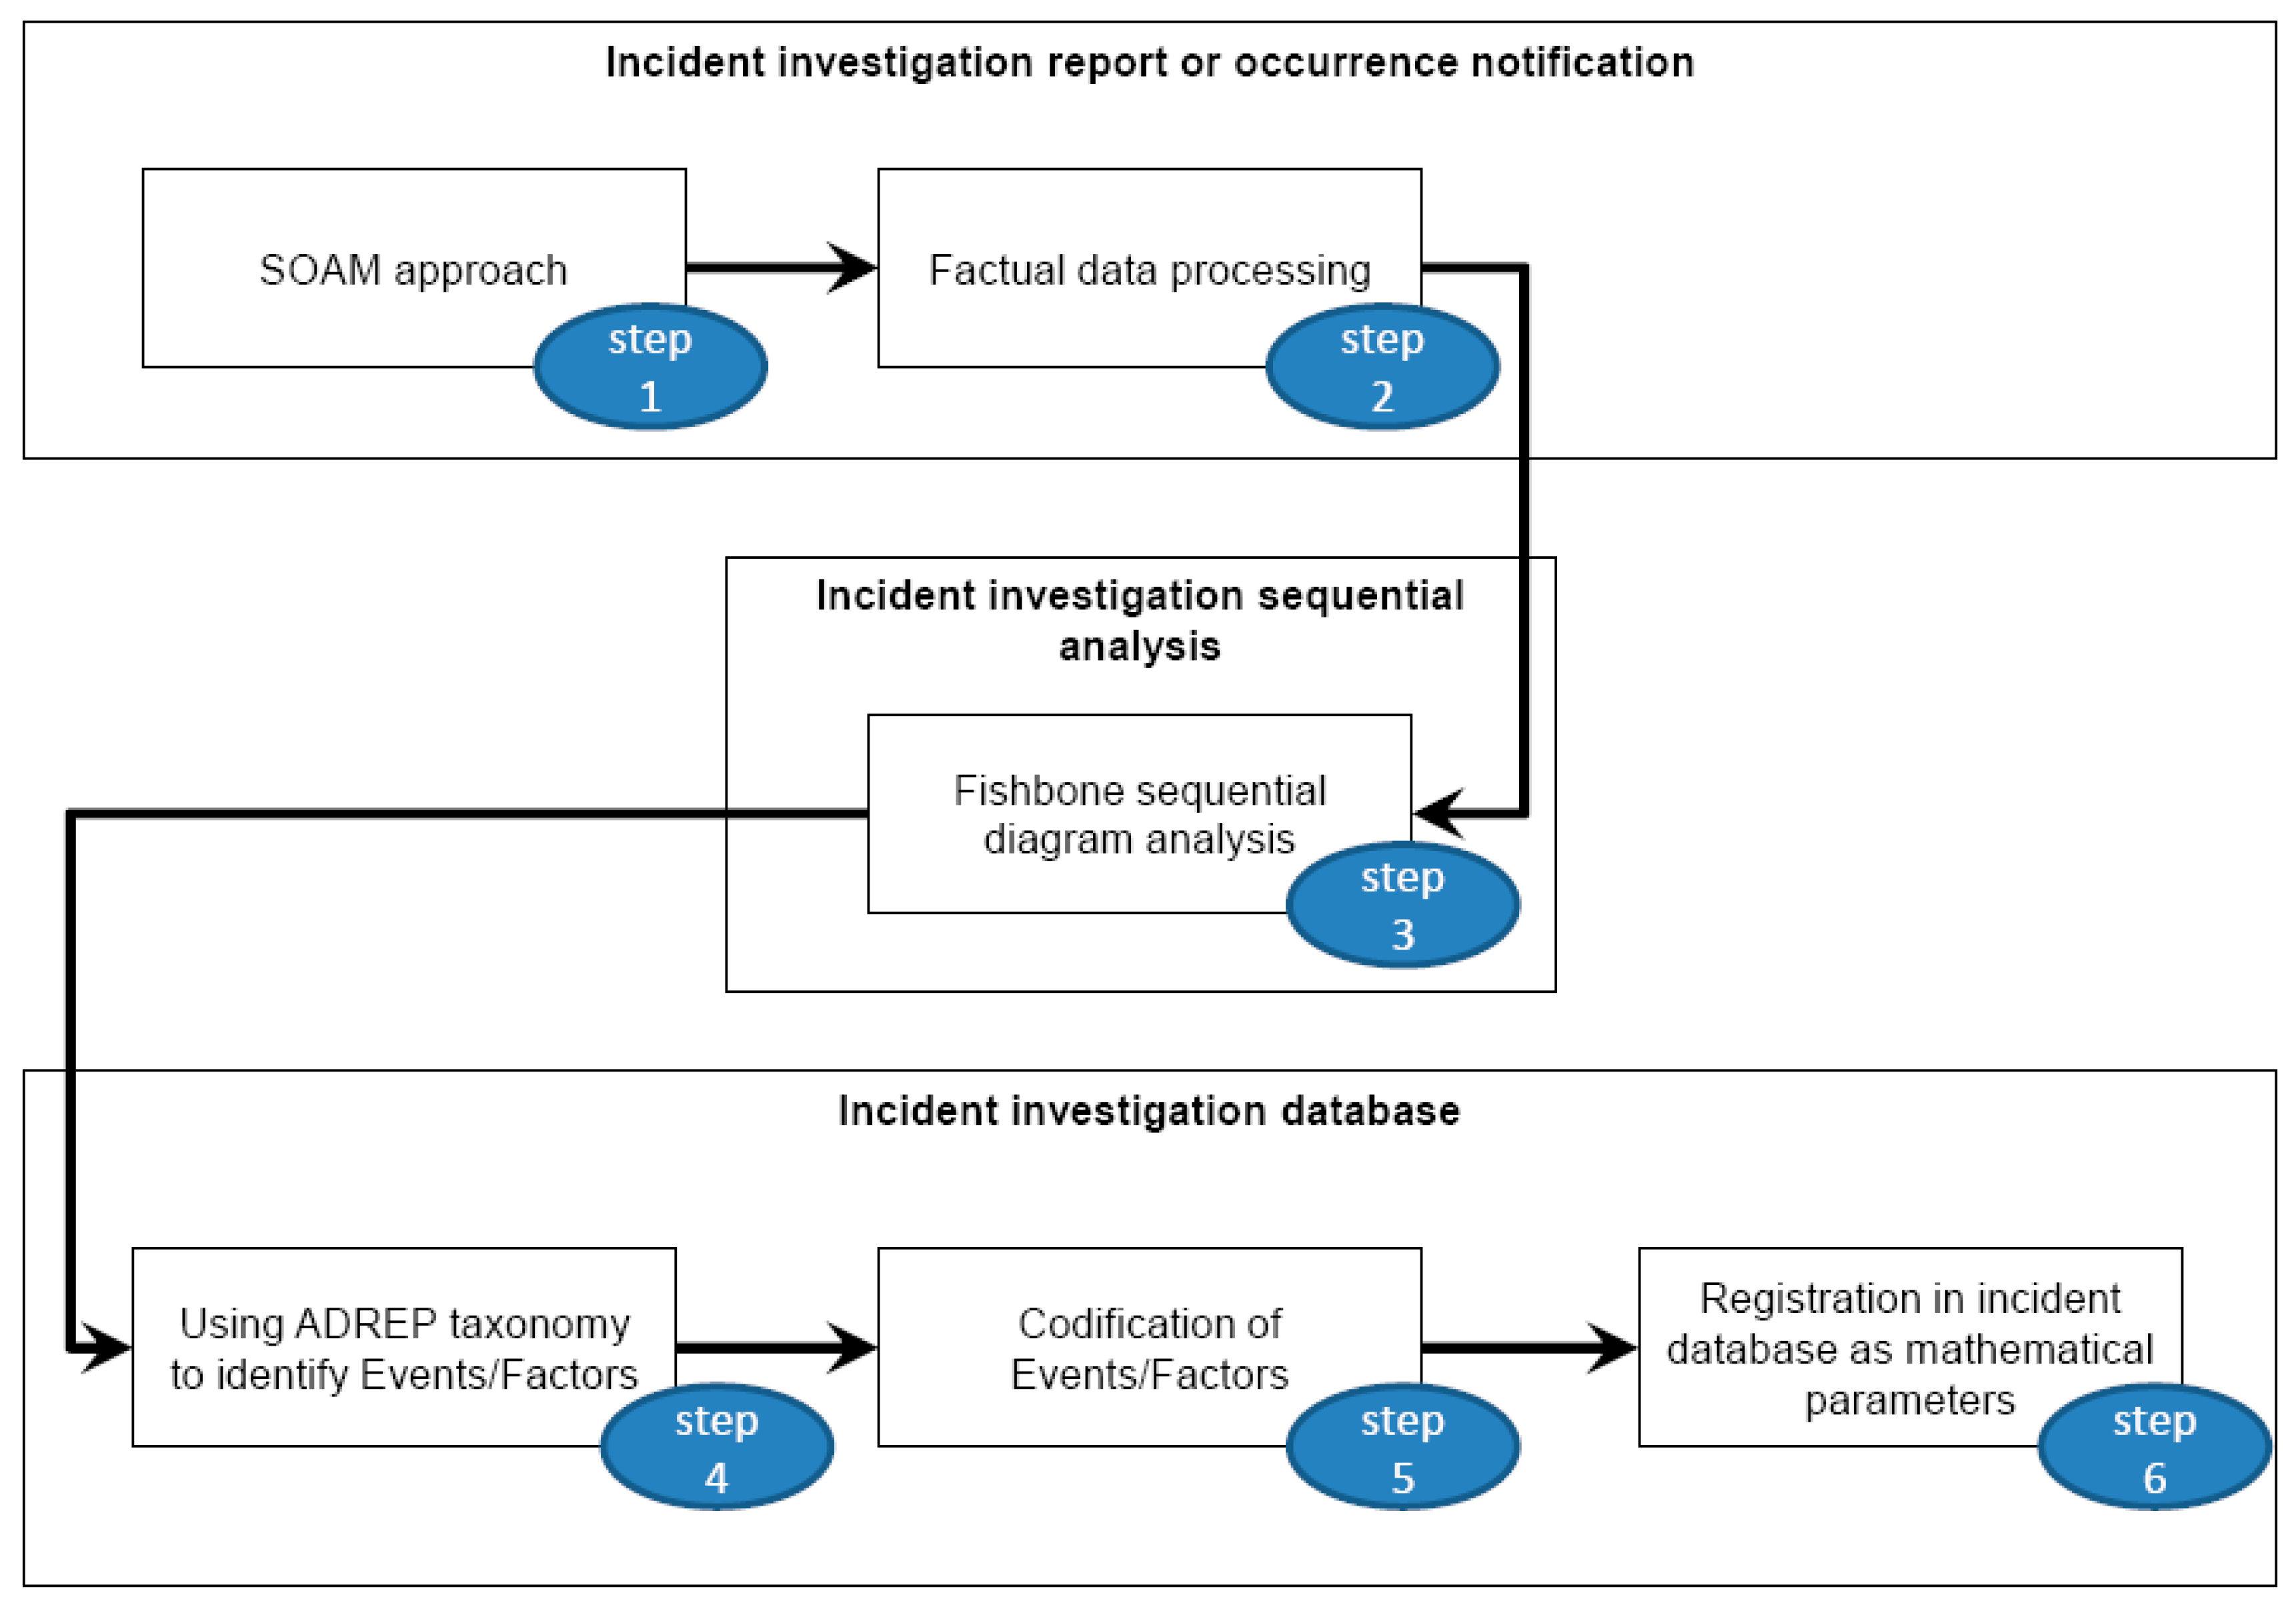 Symmetry Free Full Text A Case Study Of Fishbone Sequential Diagram Application And Adrep Taxonomy Codification In Conventional Atm Incident Investigation Html